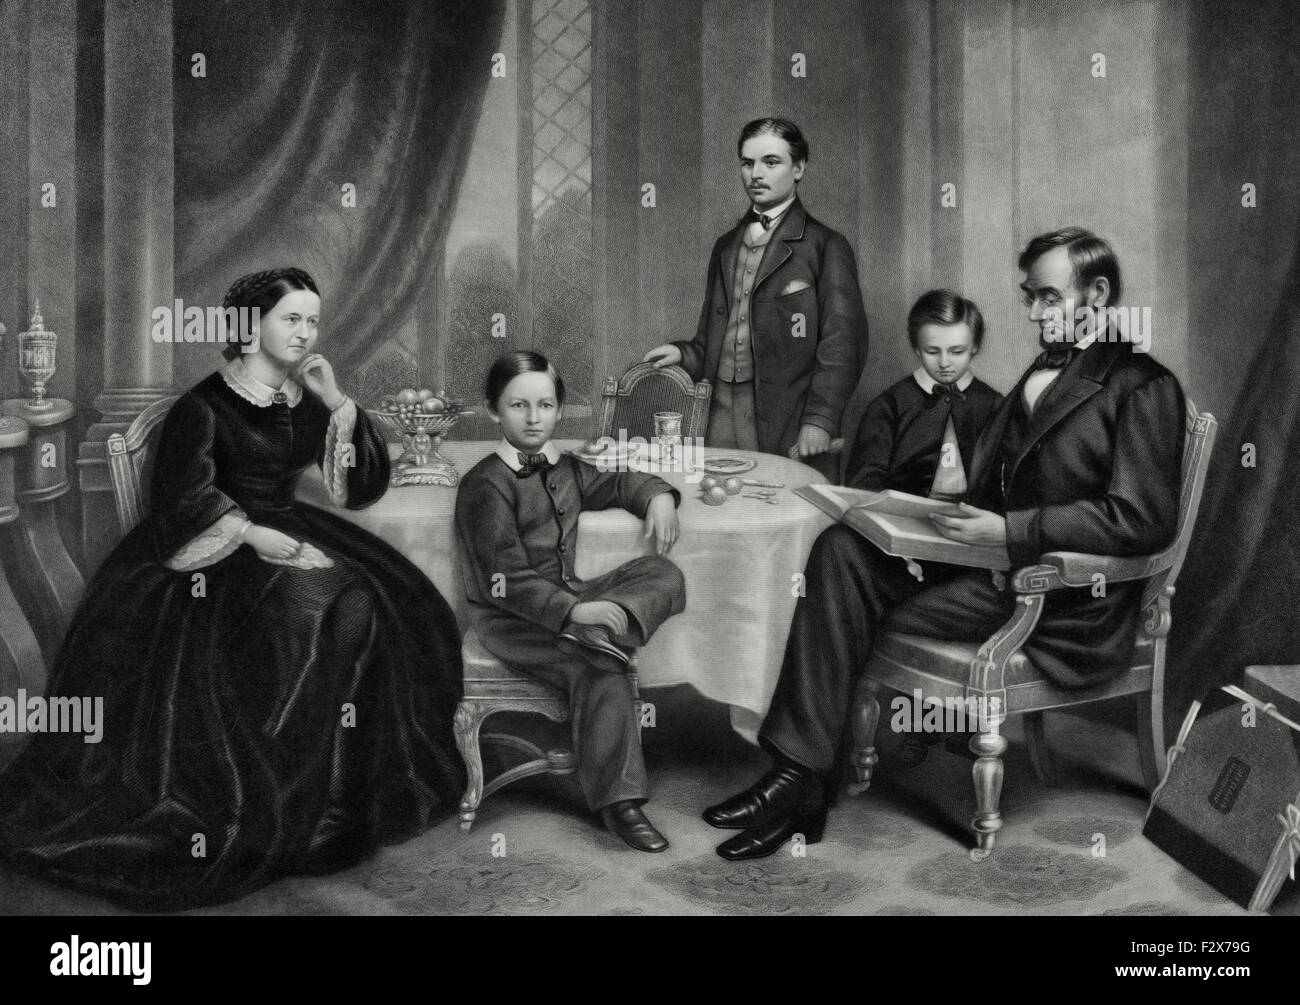 Abraham Lincoln And His Family In 1861 Stock Photo